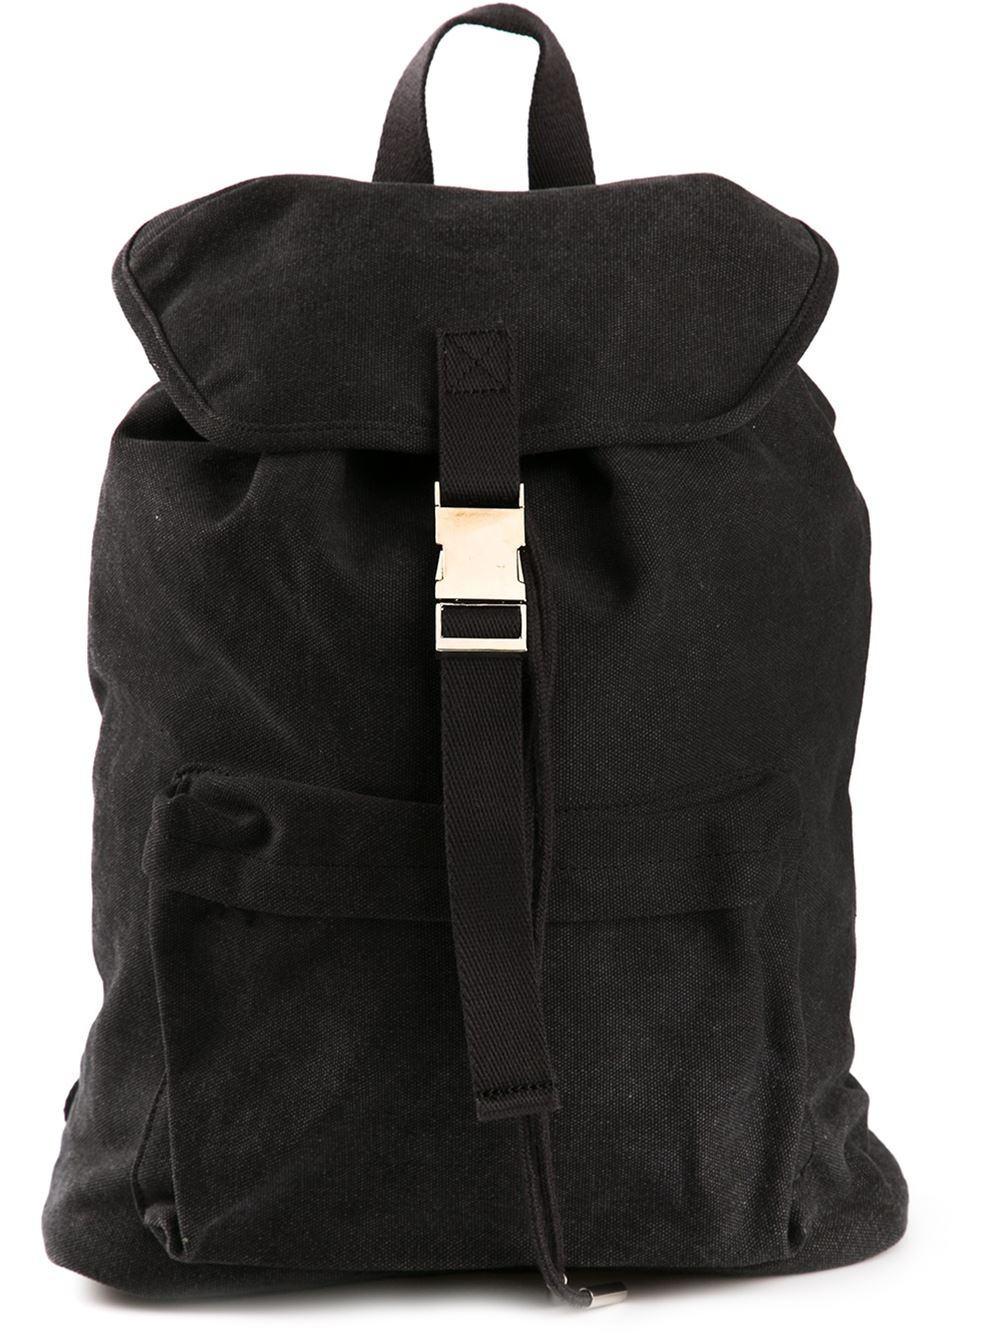 Apc Snap Buckle Backpack In Gray For Men Lyst Herschel Little America Hitam Gallery